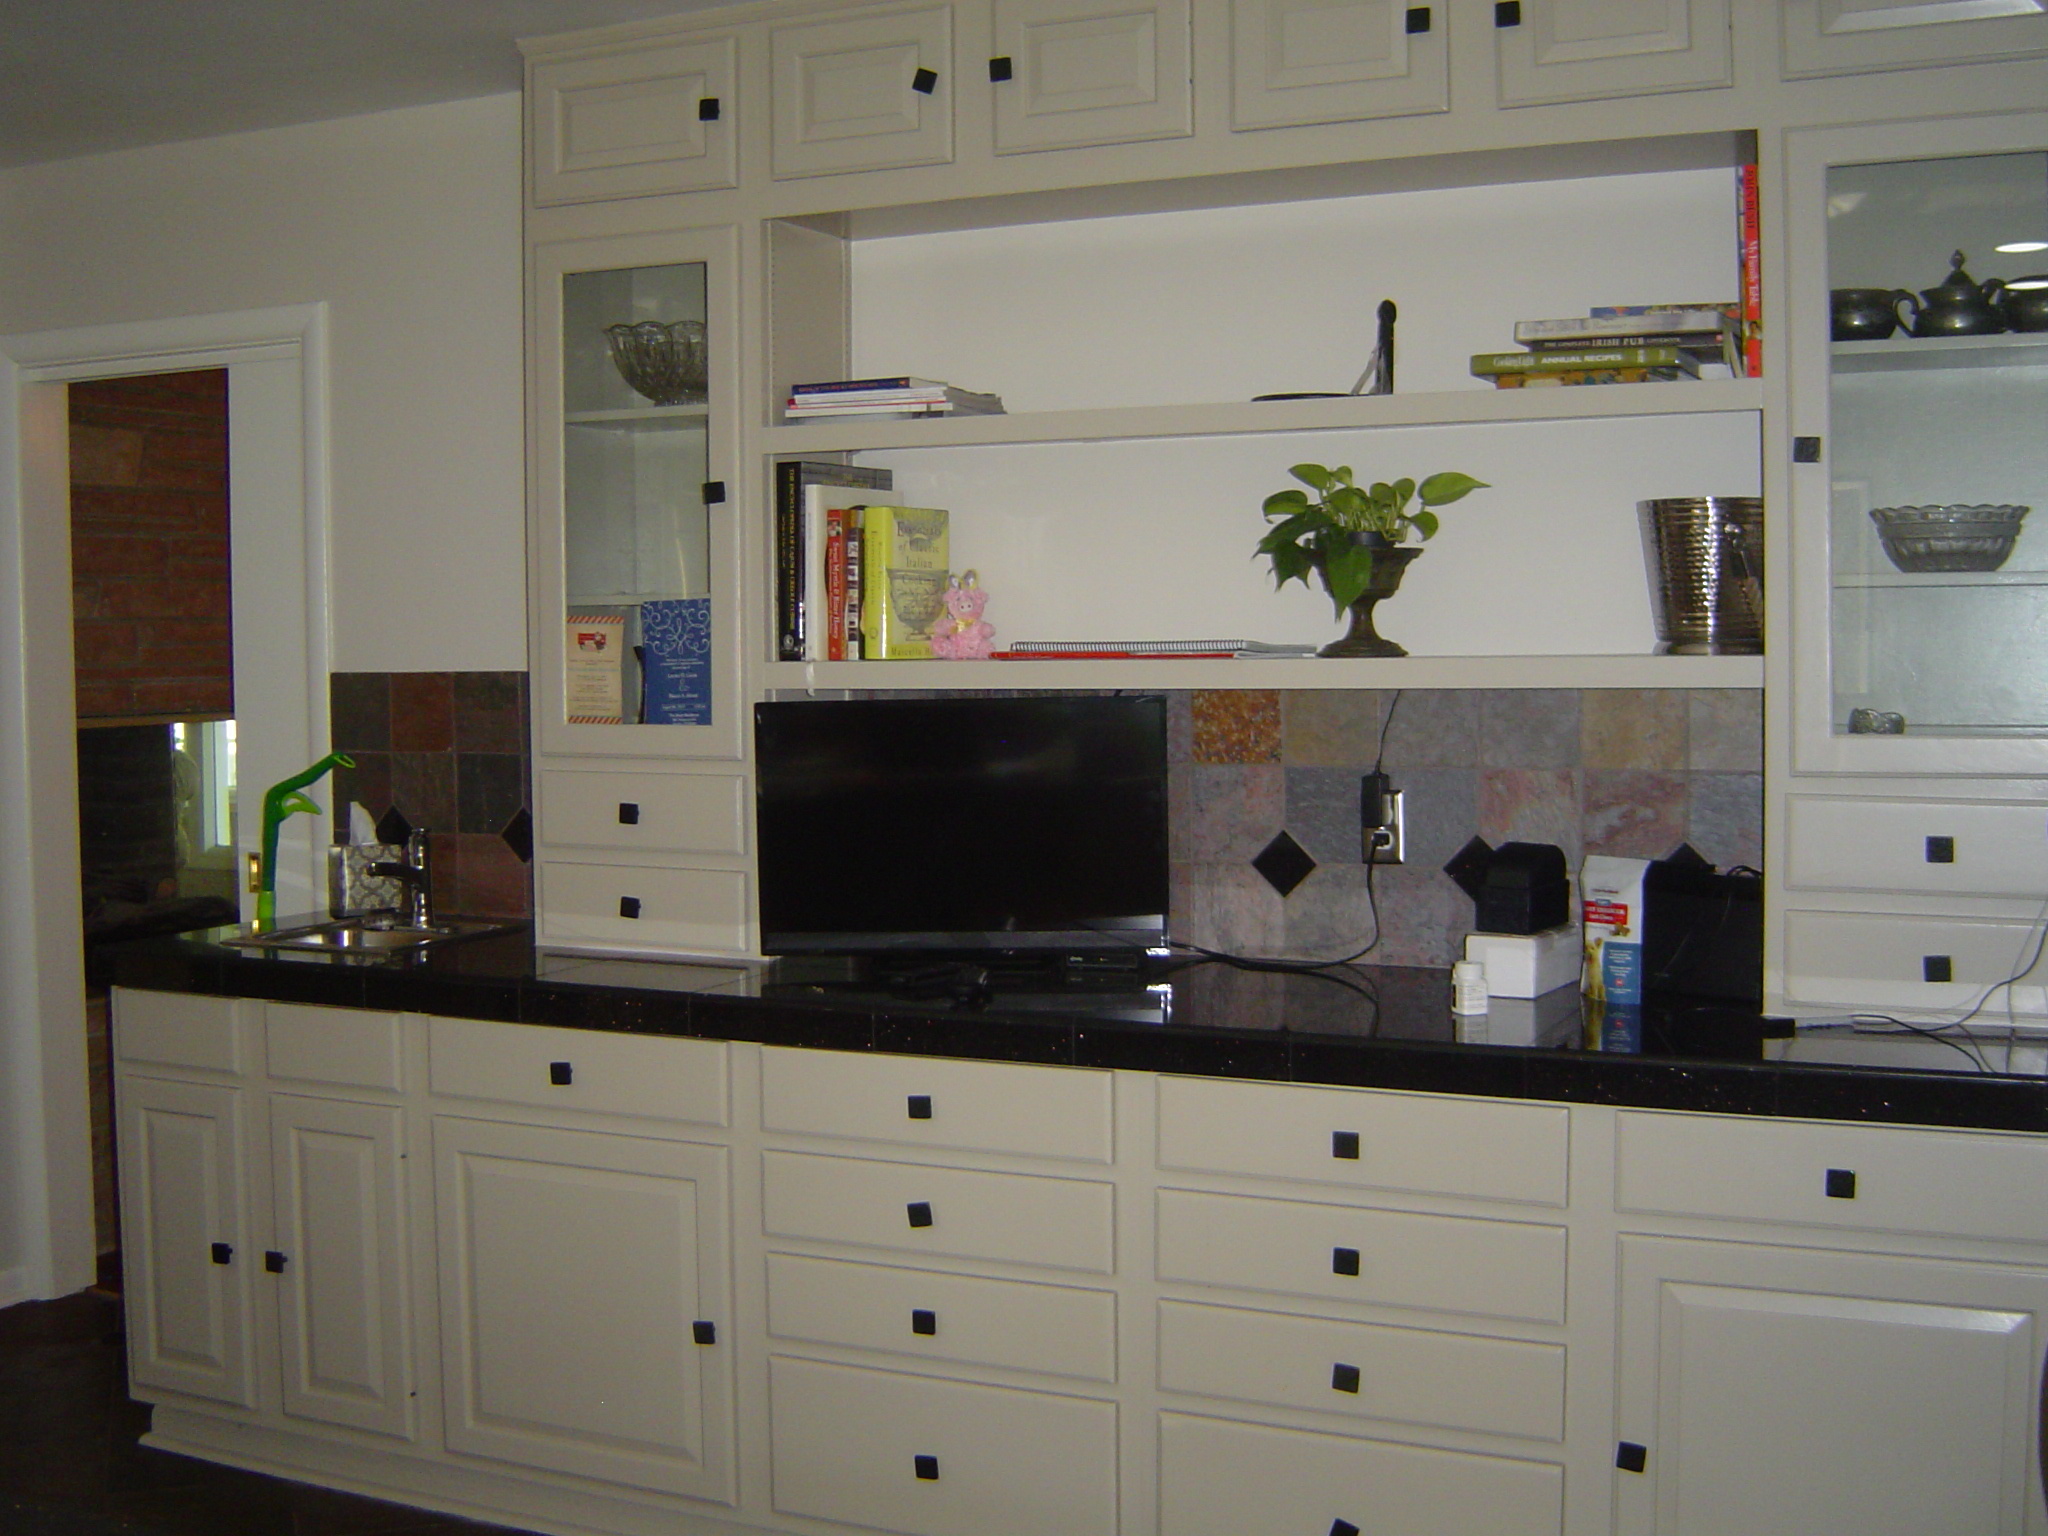 Beautiful full interior painting update plus kitchen cabinets ...